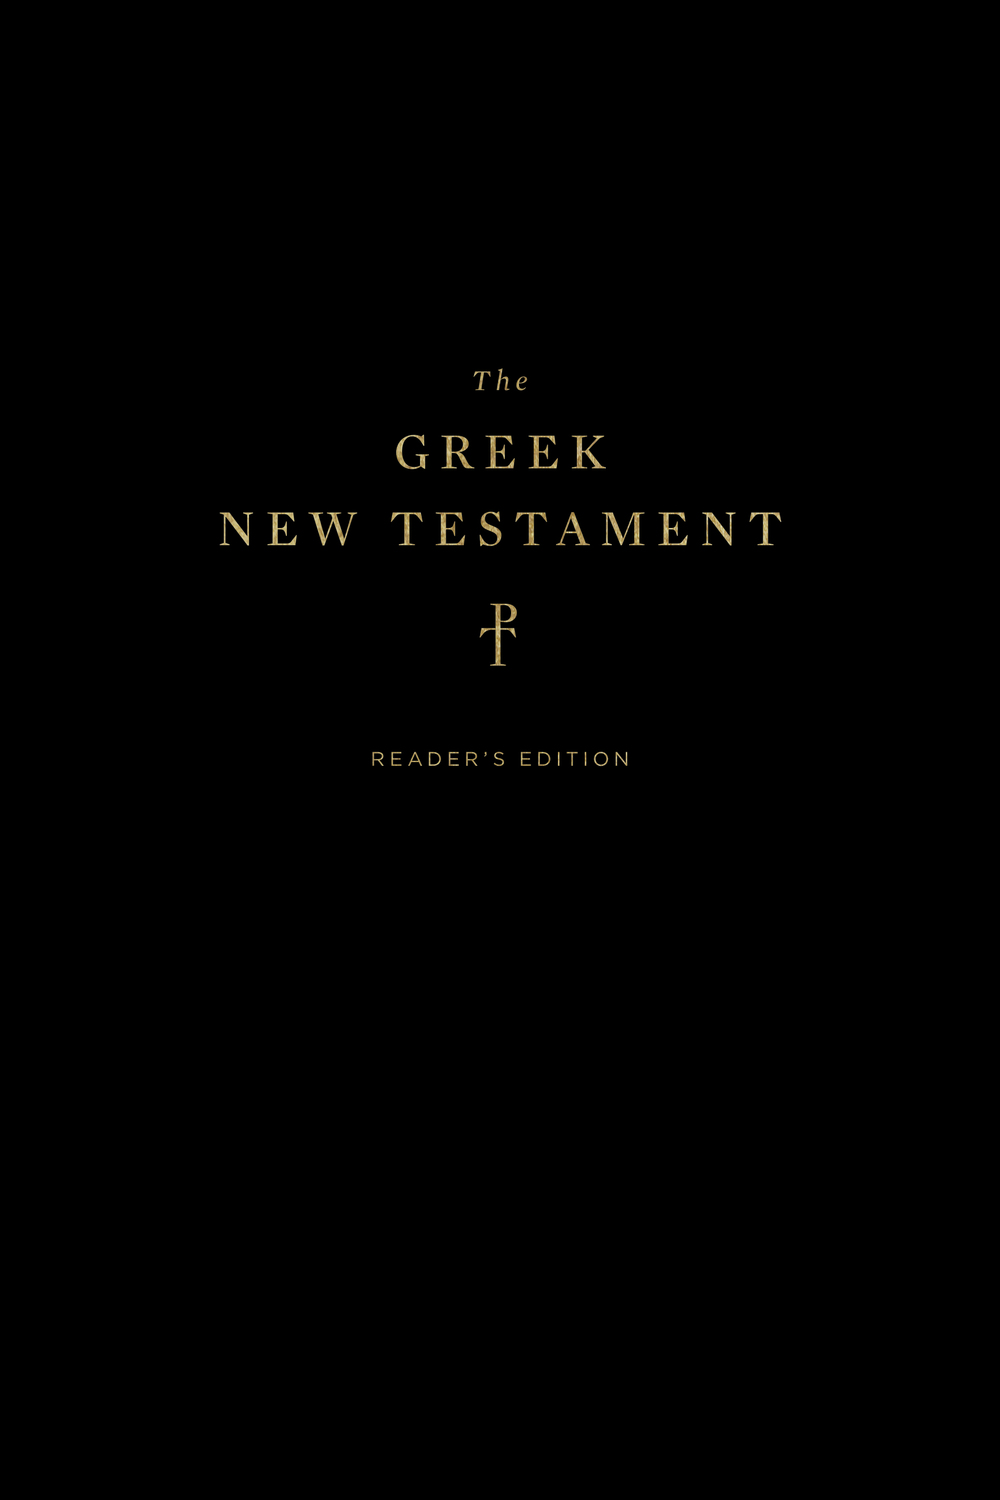 The Greek New Testament, Produced at Tyndale House, Cambridge, Reader's Edition